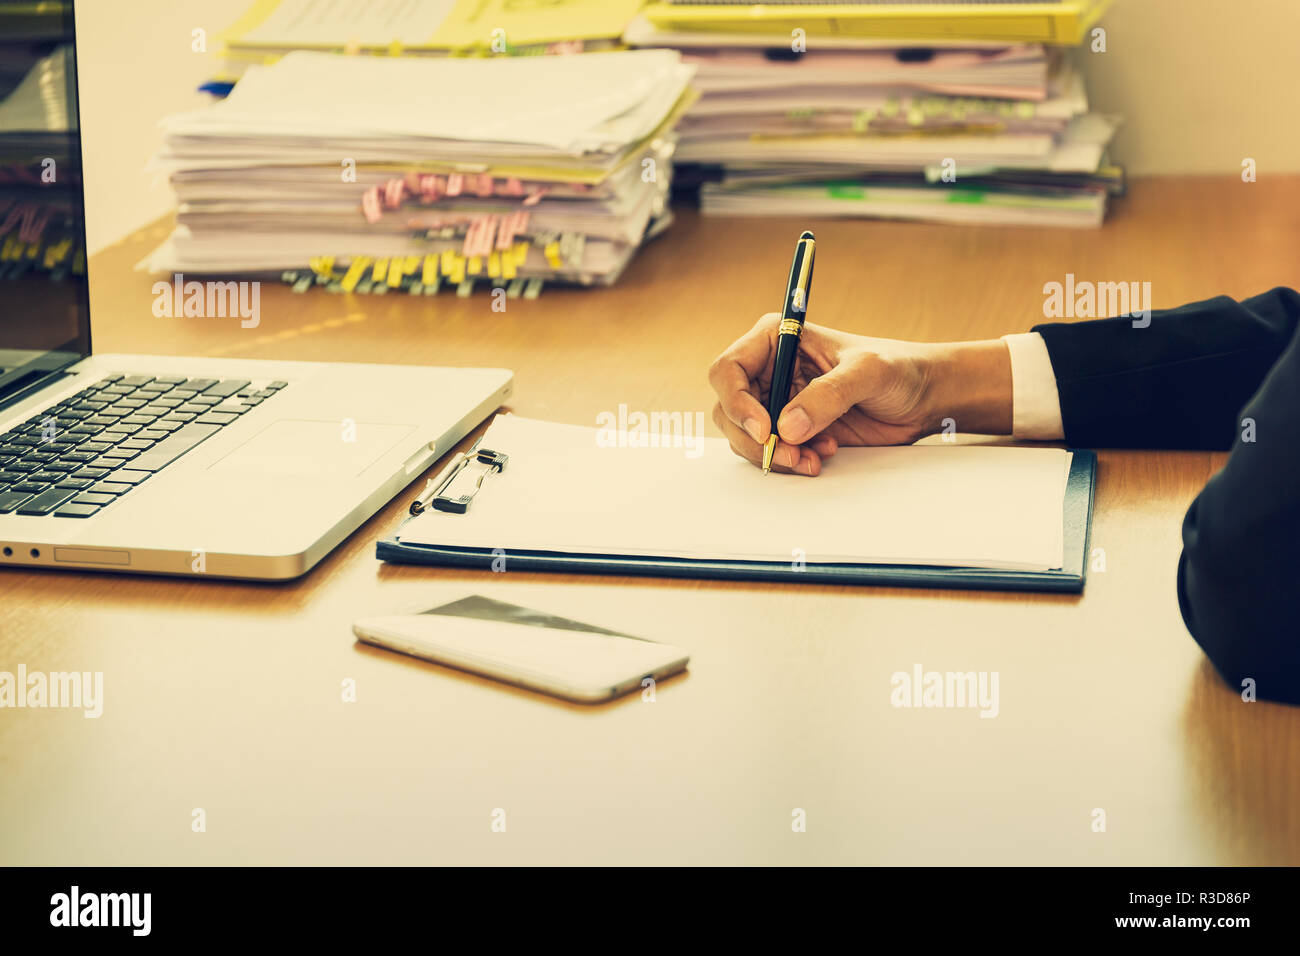 Business sucessful hand signing contract form on wooden desk in office. - Stock Image